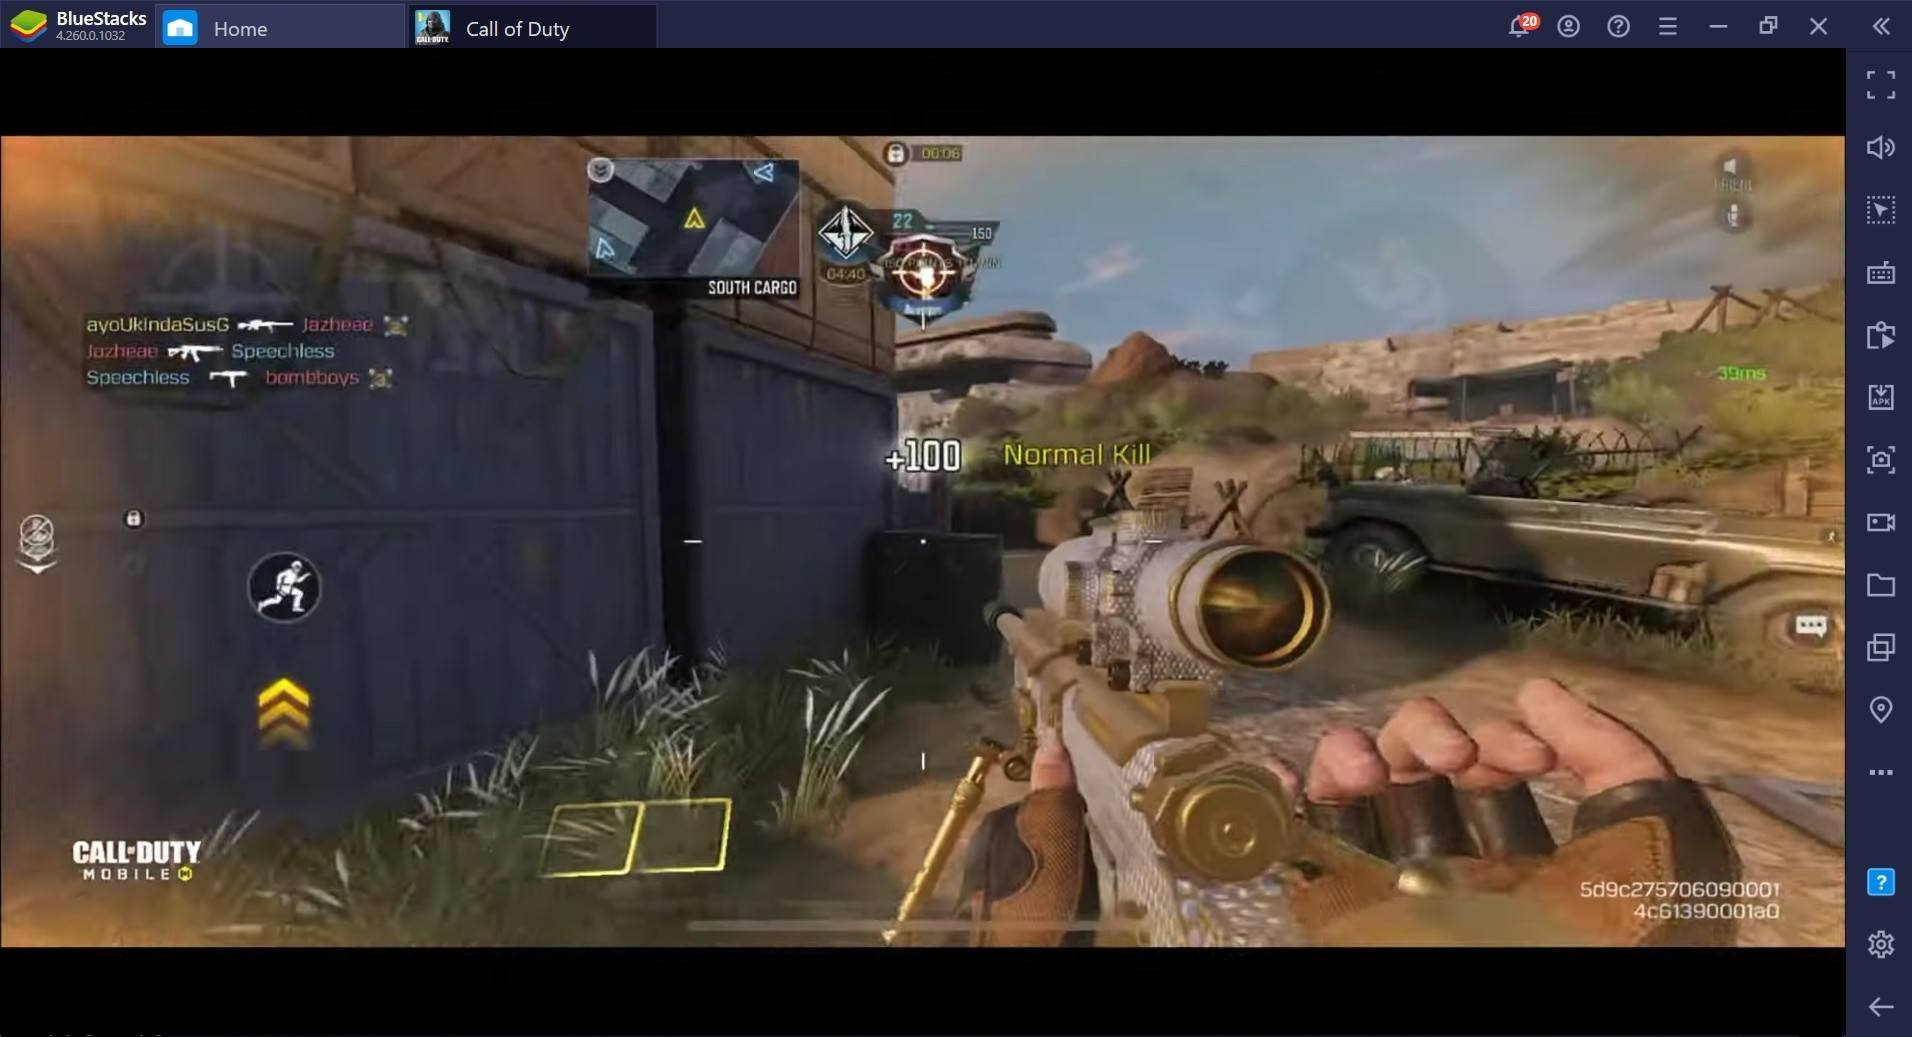 Call of Duty: Mobile Guide for Multiplayer Mode, Learn How to Use Spawn Points